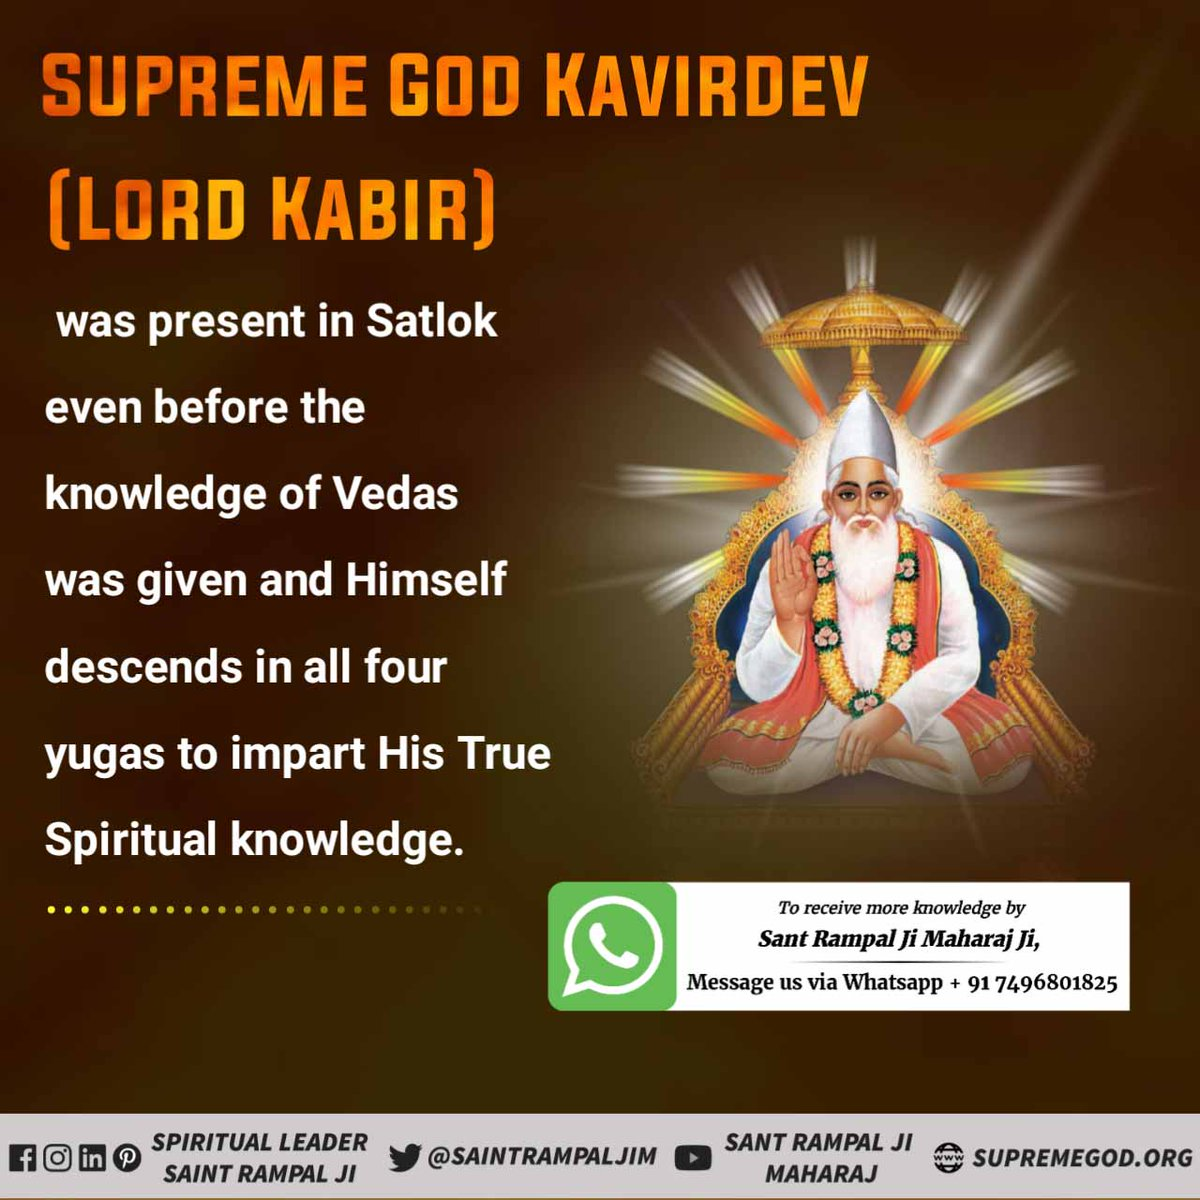 #SupremeGodKabir was present in Satlok even before the knowledge of Vedas was given and Himself descends in all four yugas to impart His True Spiritual knowledge. @SaintRampalJiM For More Details Visit :- Satlok Ashram YouTube Channel.